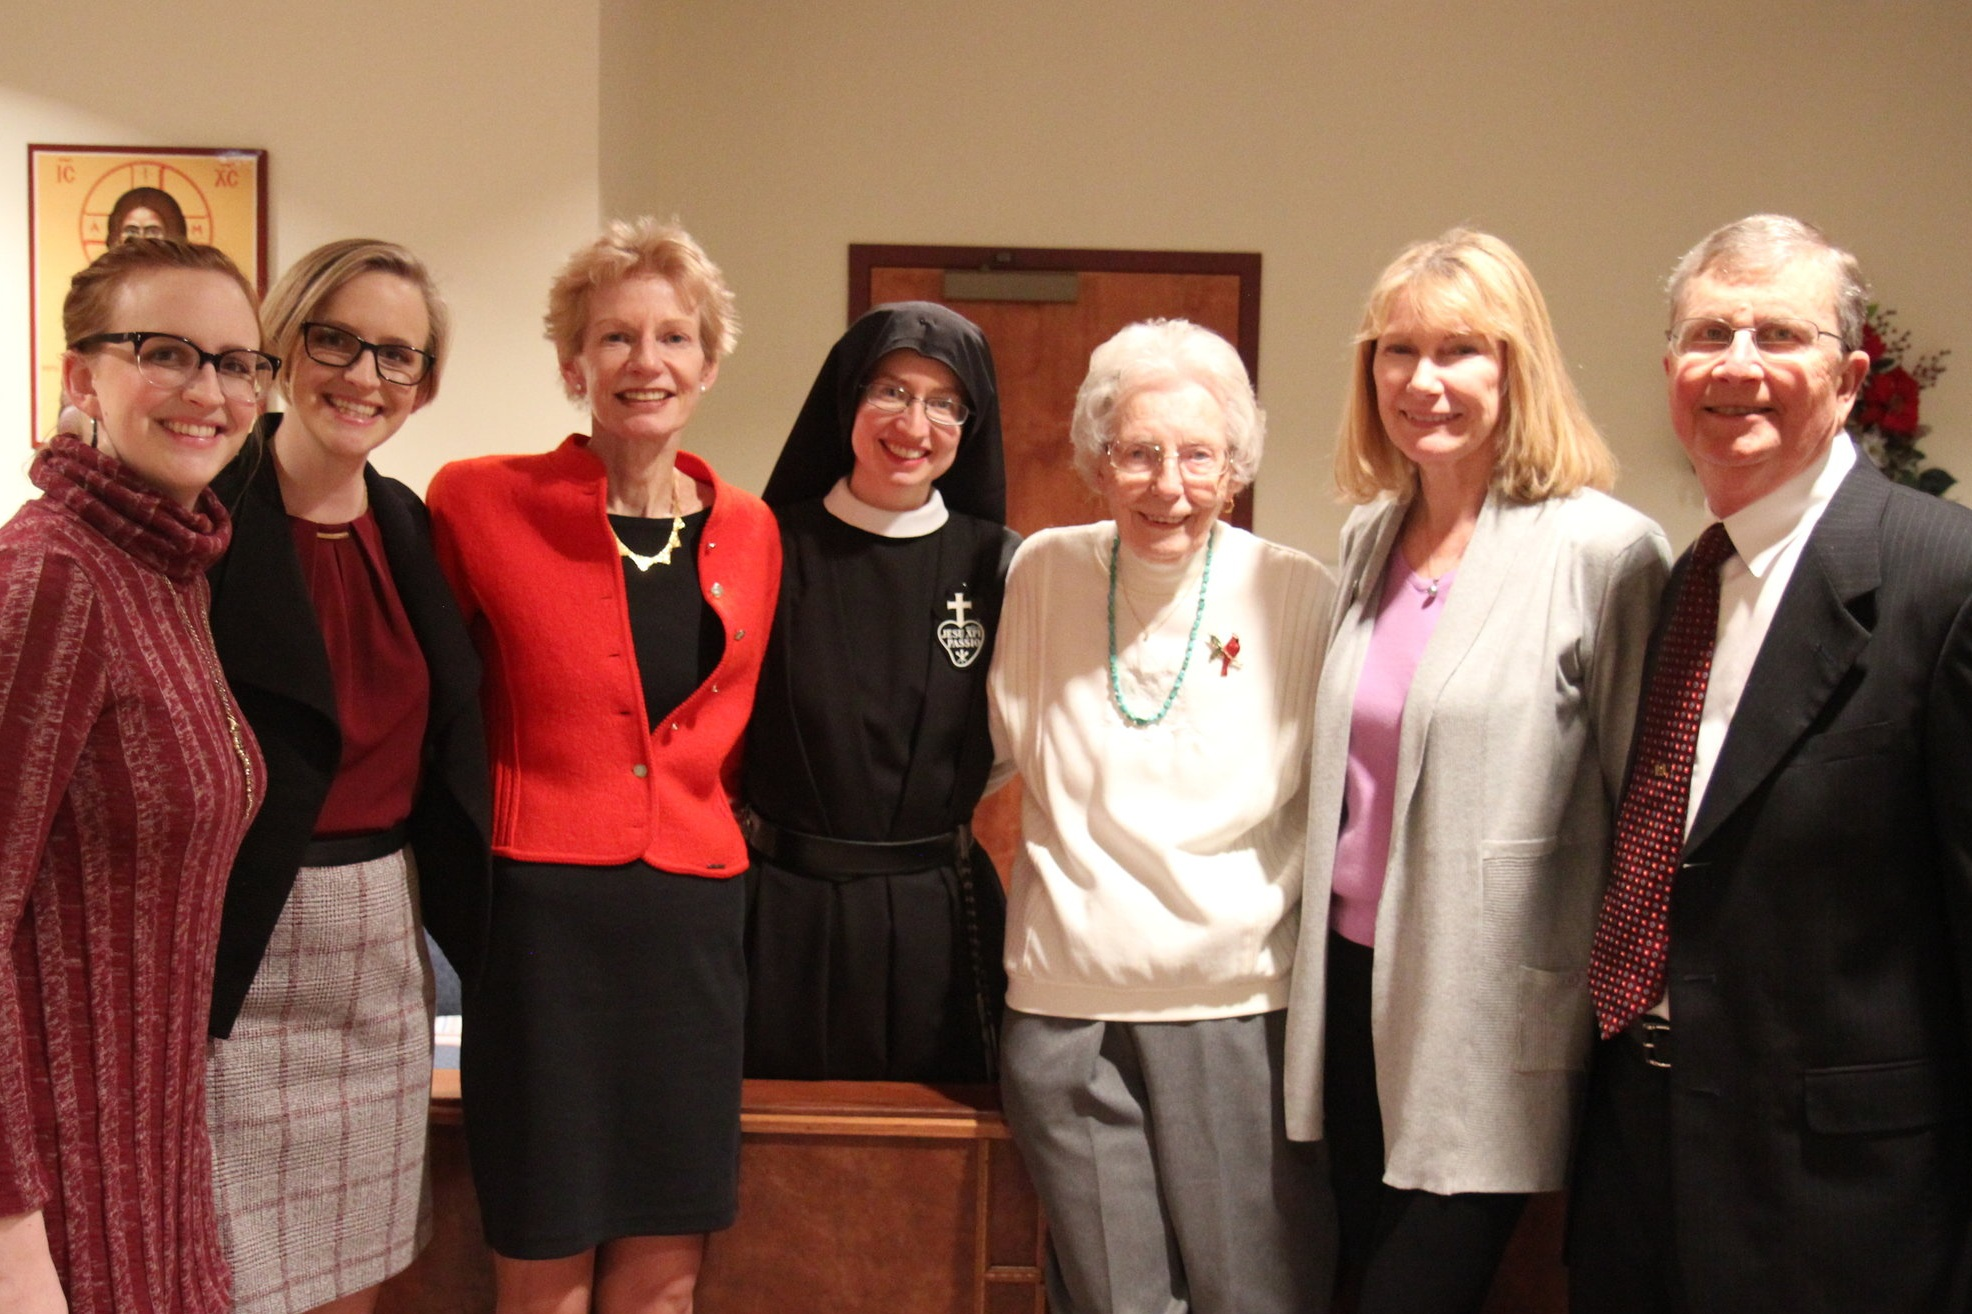 Sr. Cecilia Maria with some of her family: twin cousins Emily & Rachel; Jane (mom), Grandma Nita, Aunt Alice, and Tim (dad).